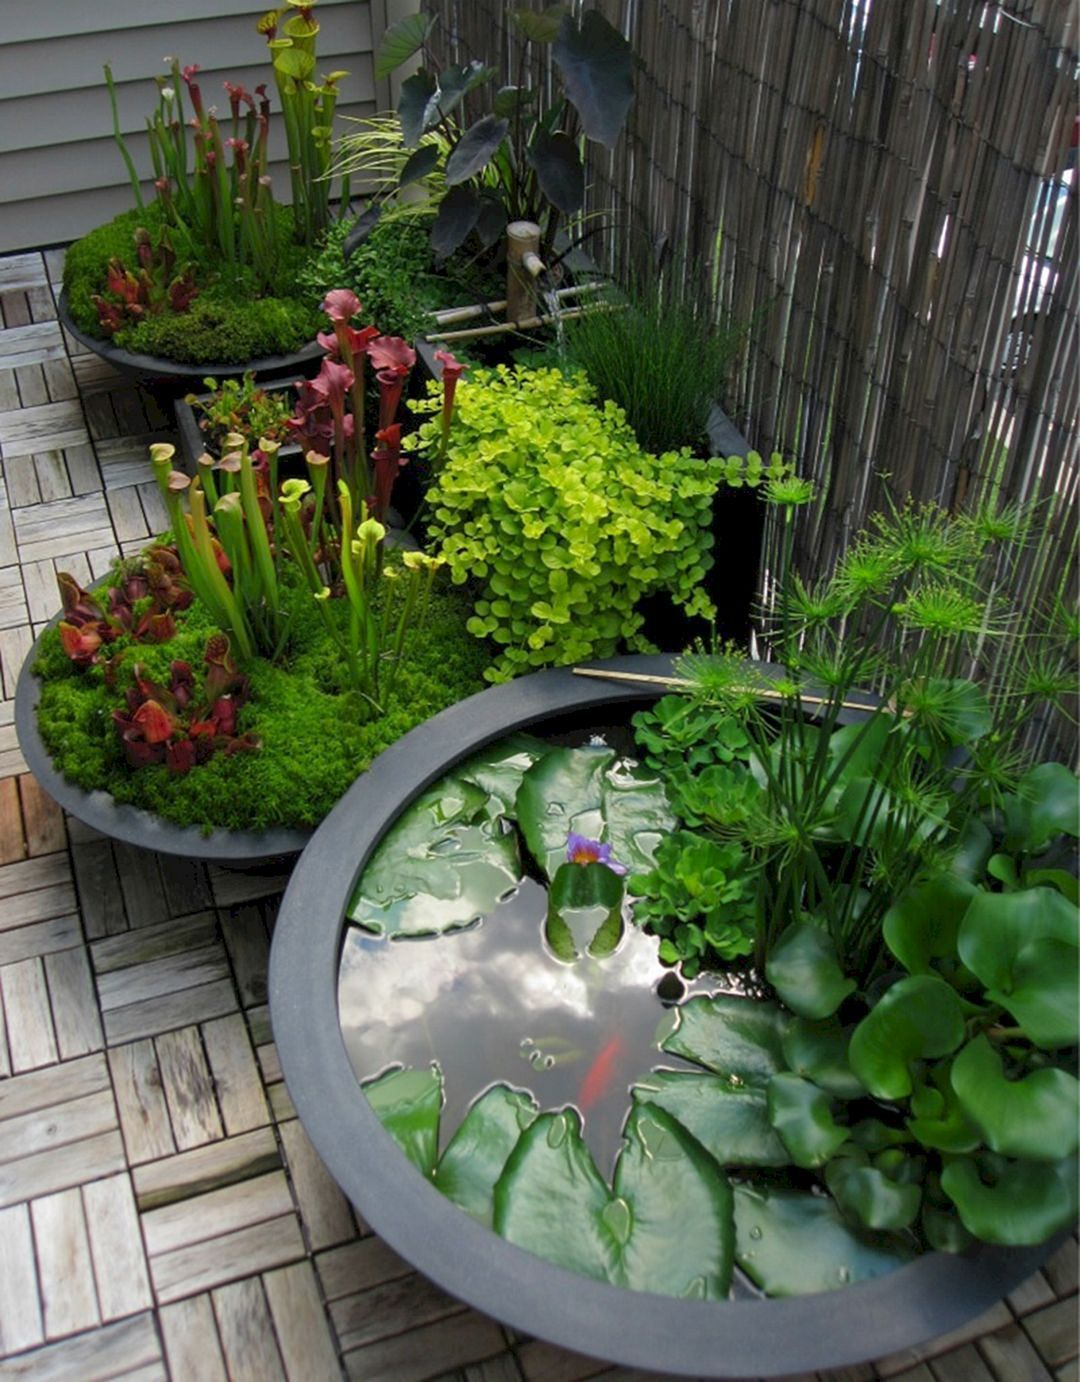 Pin by Deep Rs on Garden | Pinterest | Small spaces, Spaces and Gardens